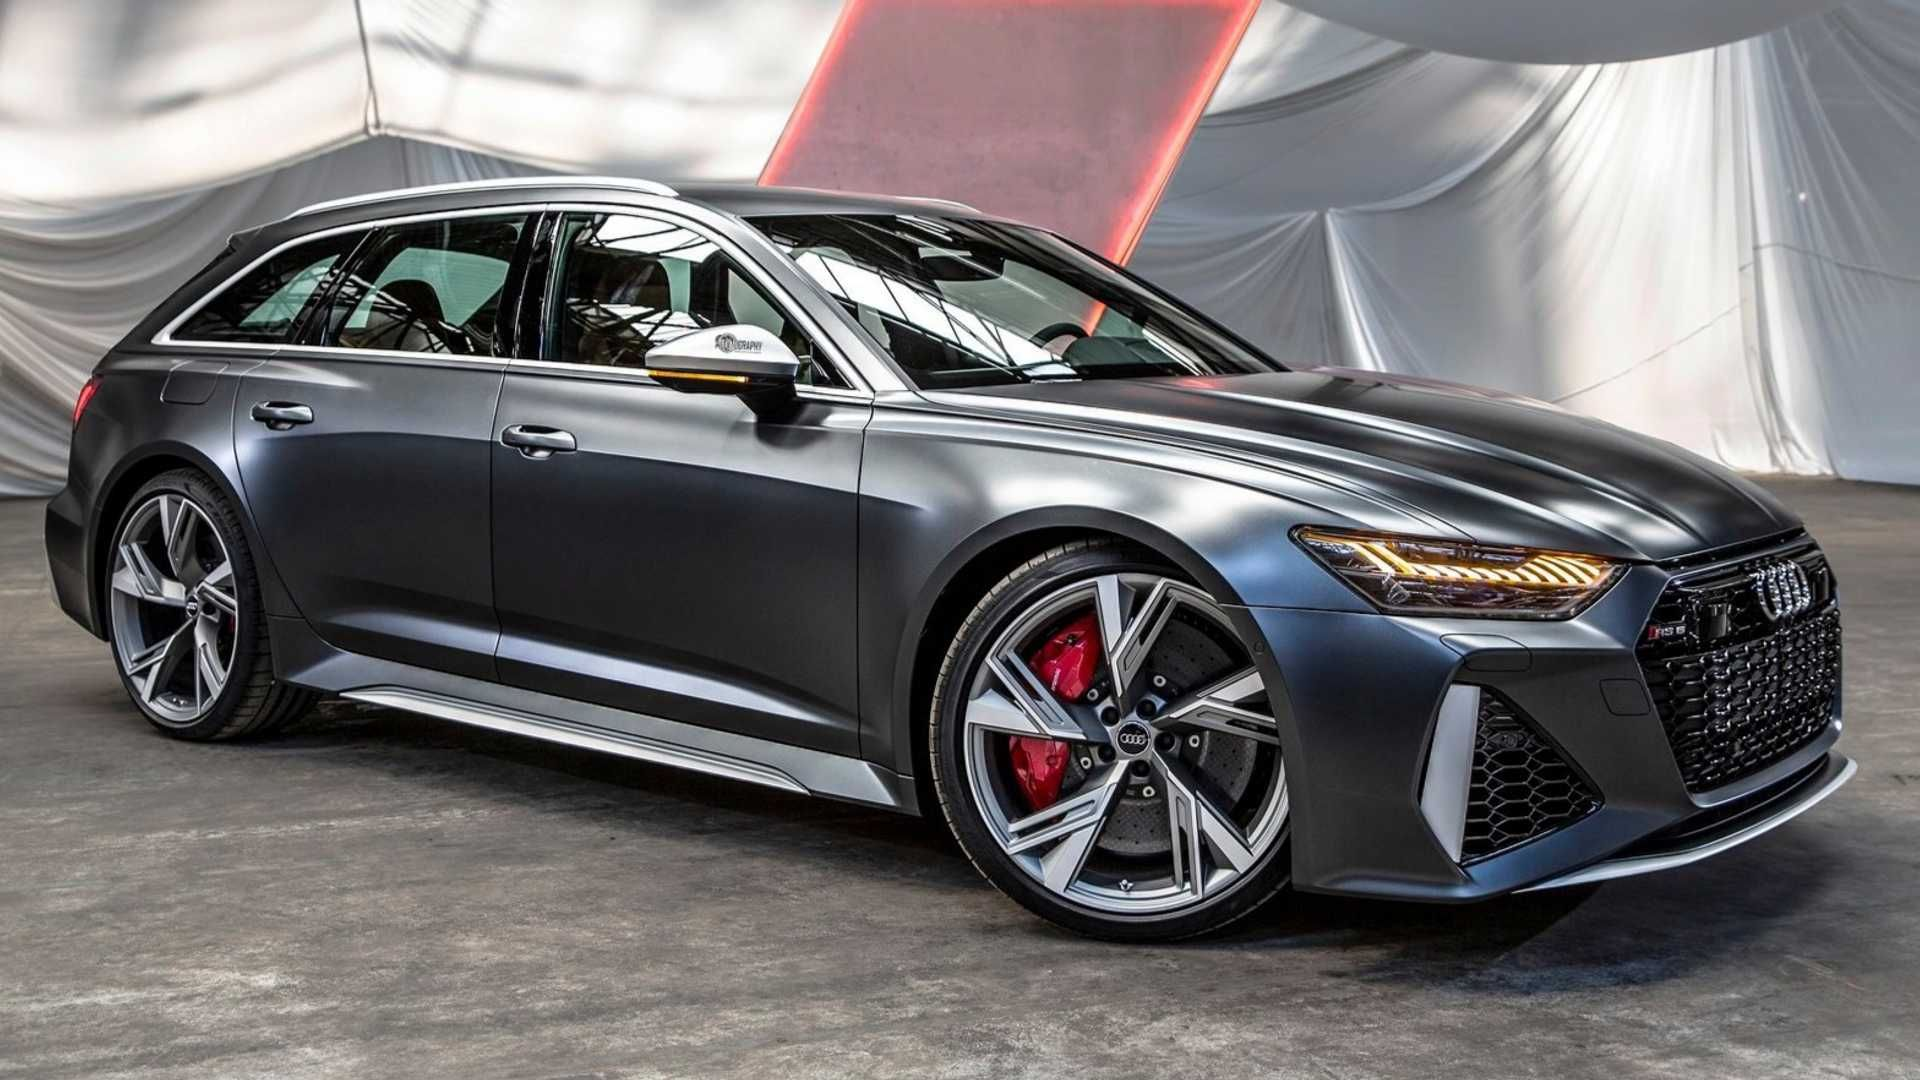 2020 Audi Rs6 Avant Video Illustrates Our Love For Super Wagons Audi Rs6 Audi Wagon Audi Rs6 Wagon